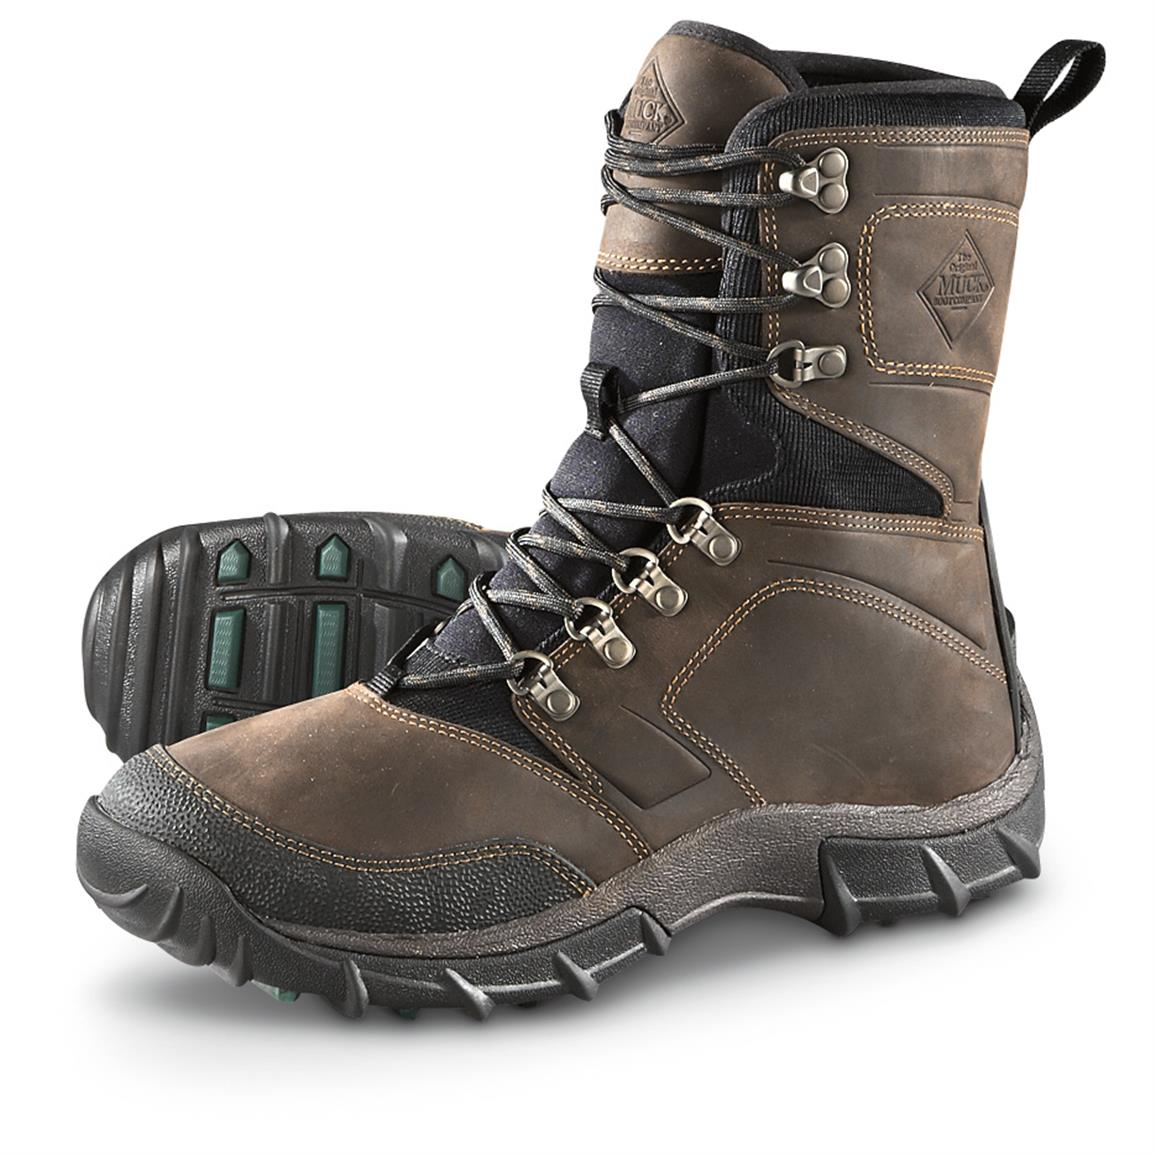 Snow Hiking Boots lRwlSahc